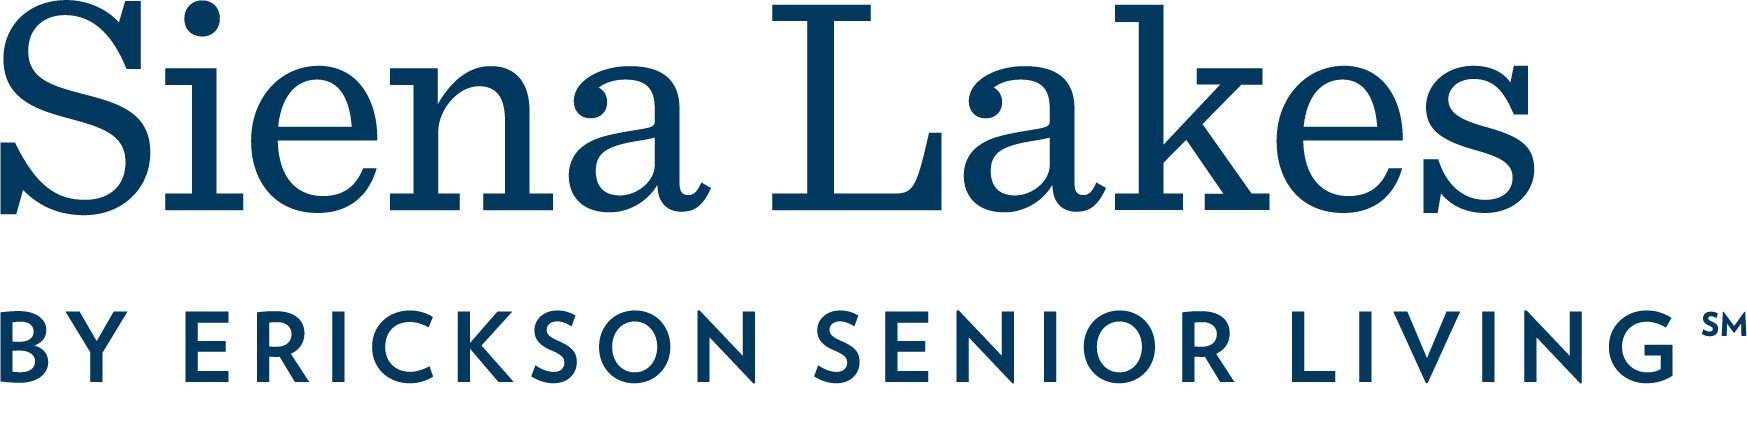 Siena Lakes by Erickson Senior Living